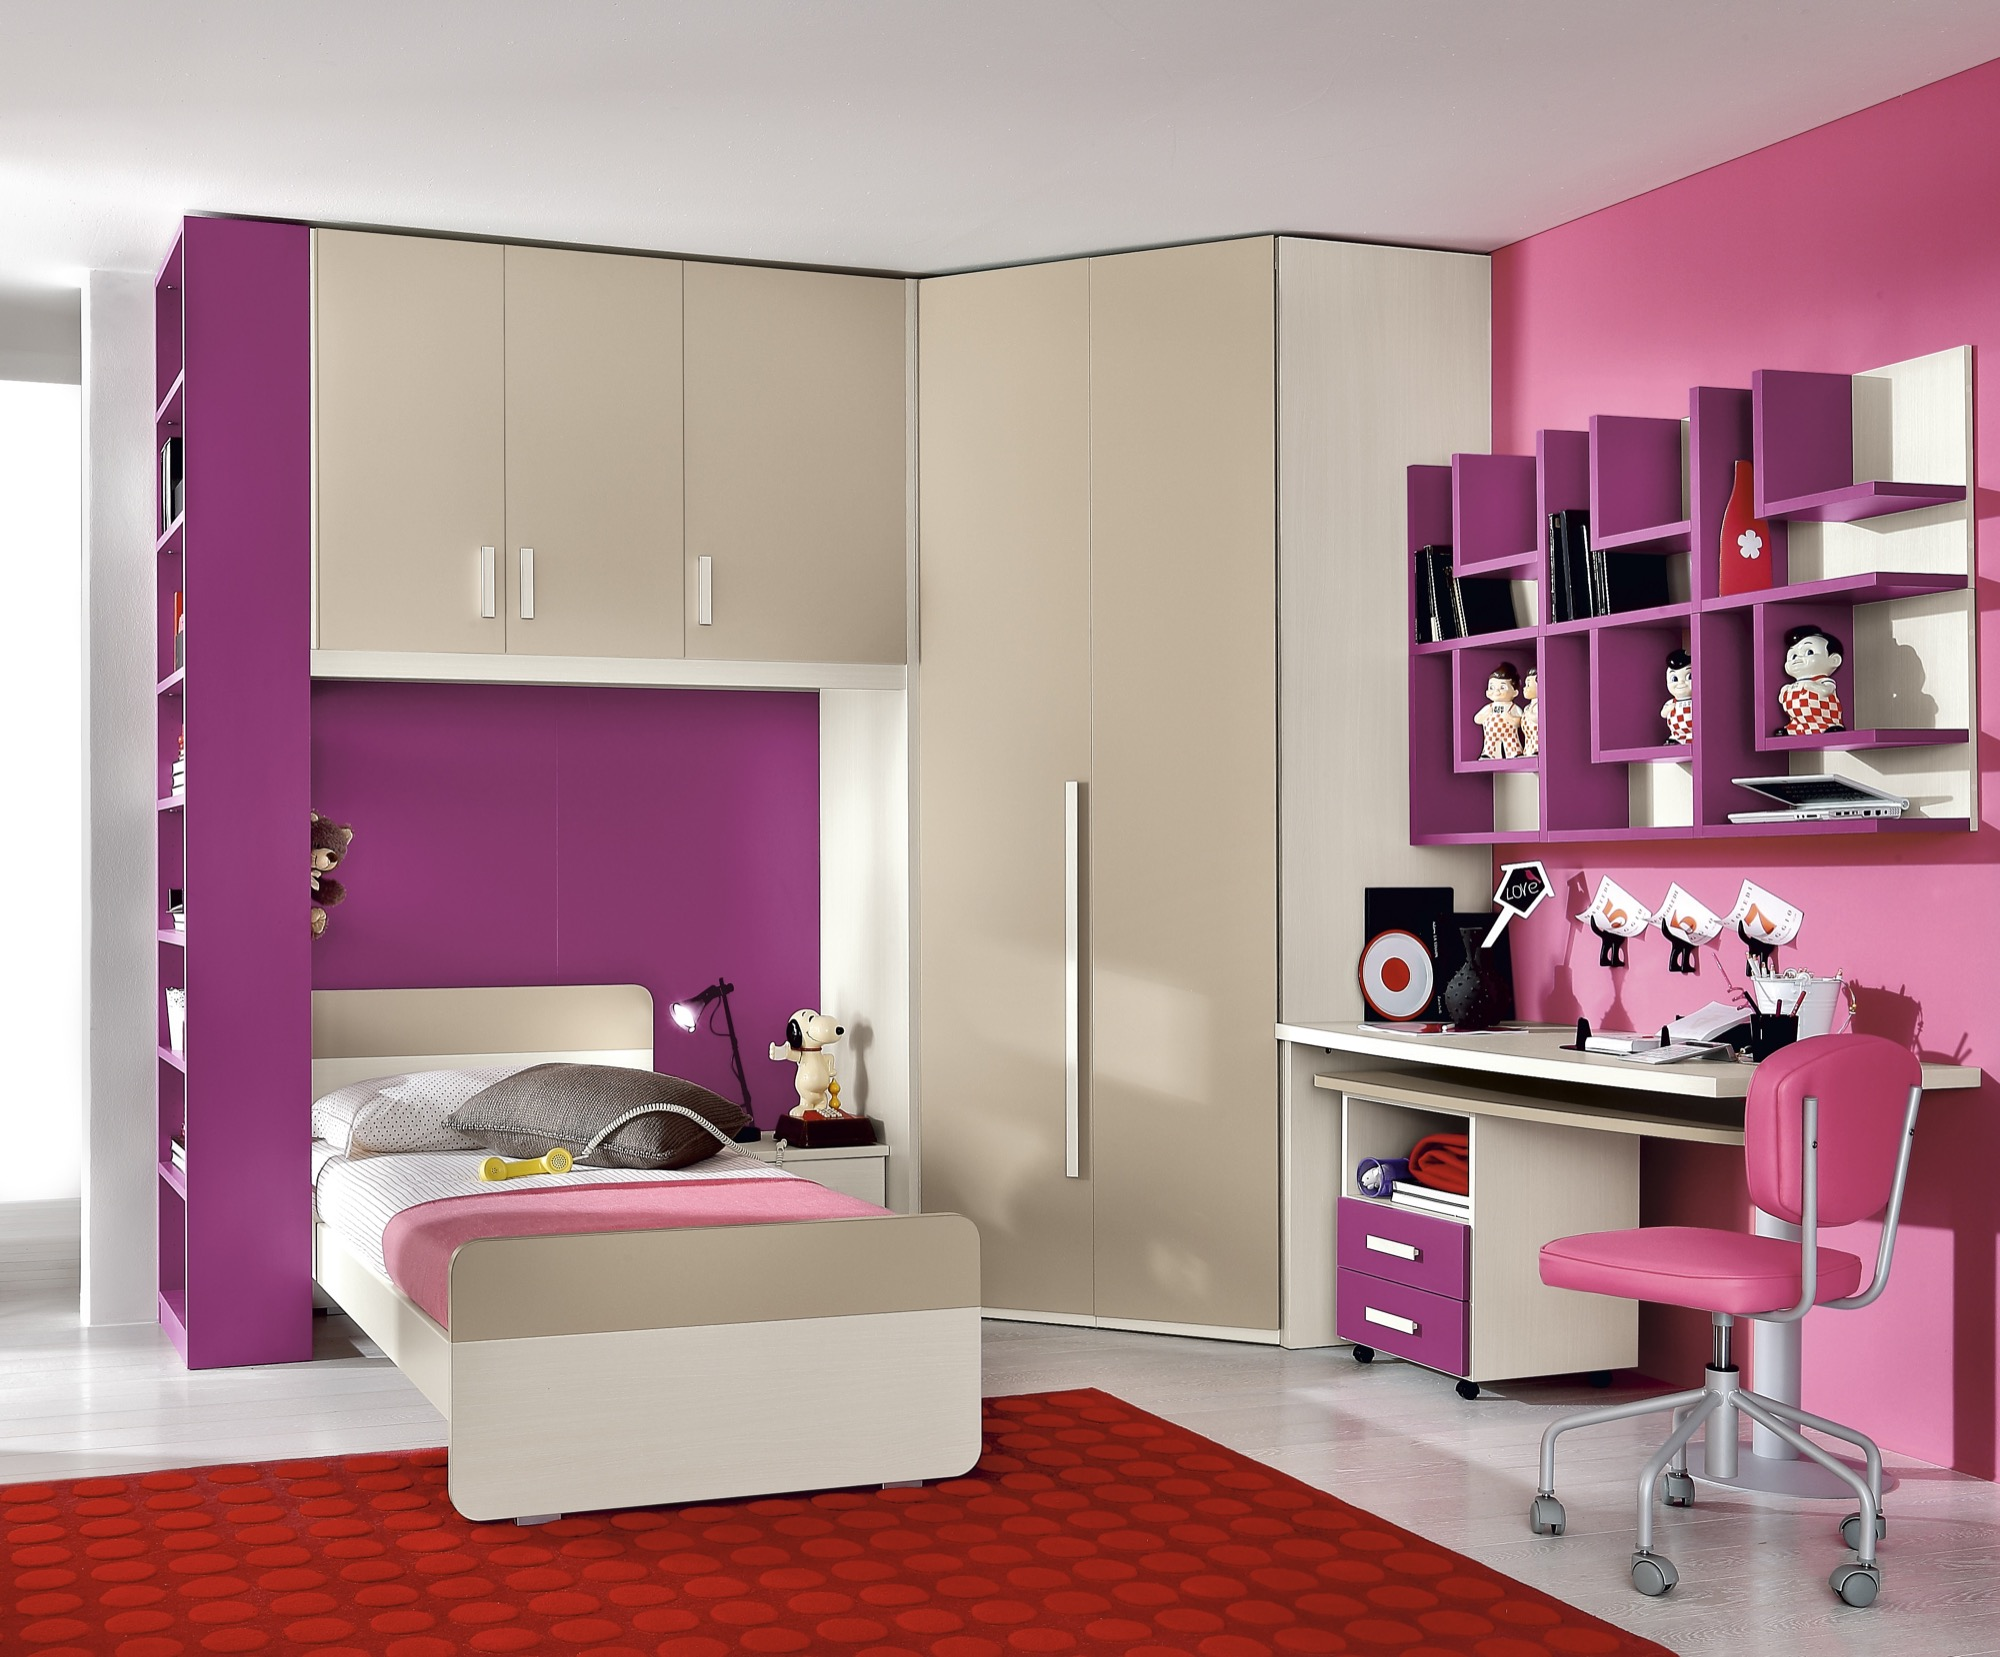 Camere per bambini   progetto notte young   furlan mobili